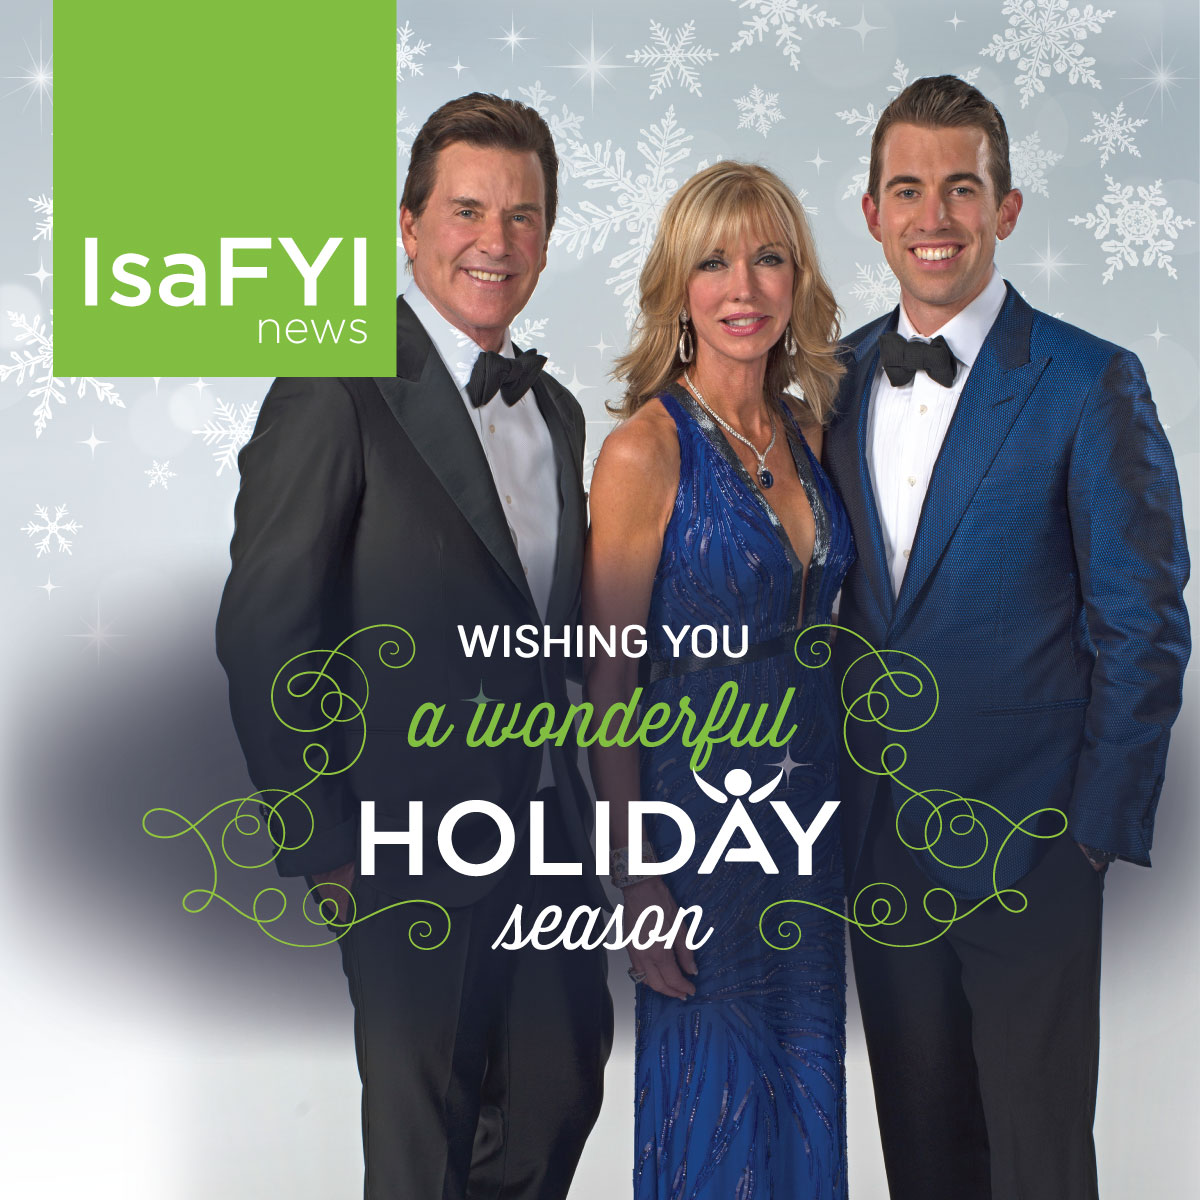 happyHoliday-IsaFYI-1200x1200